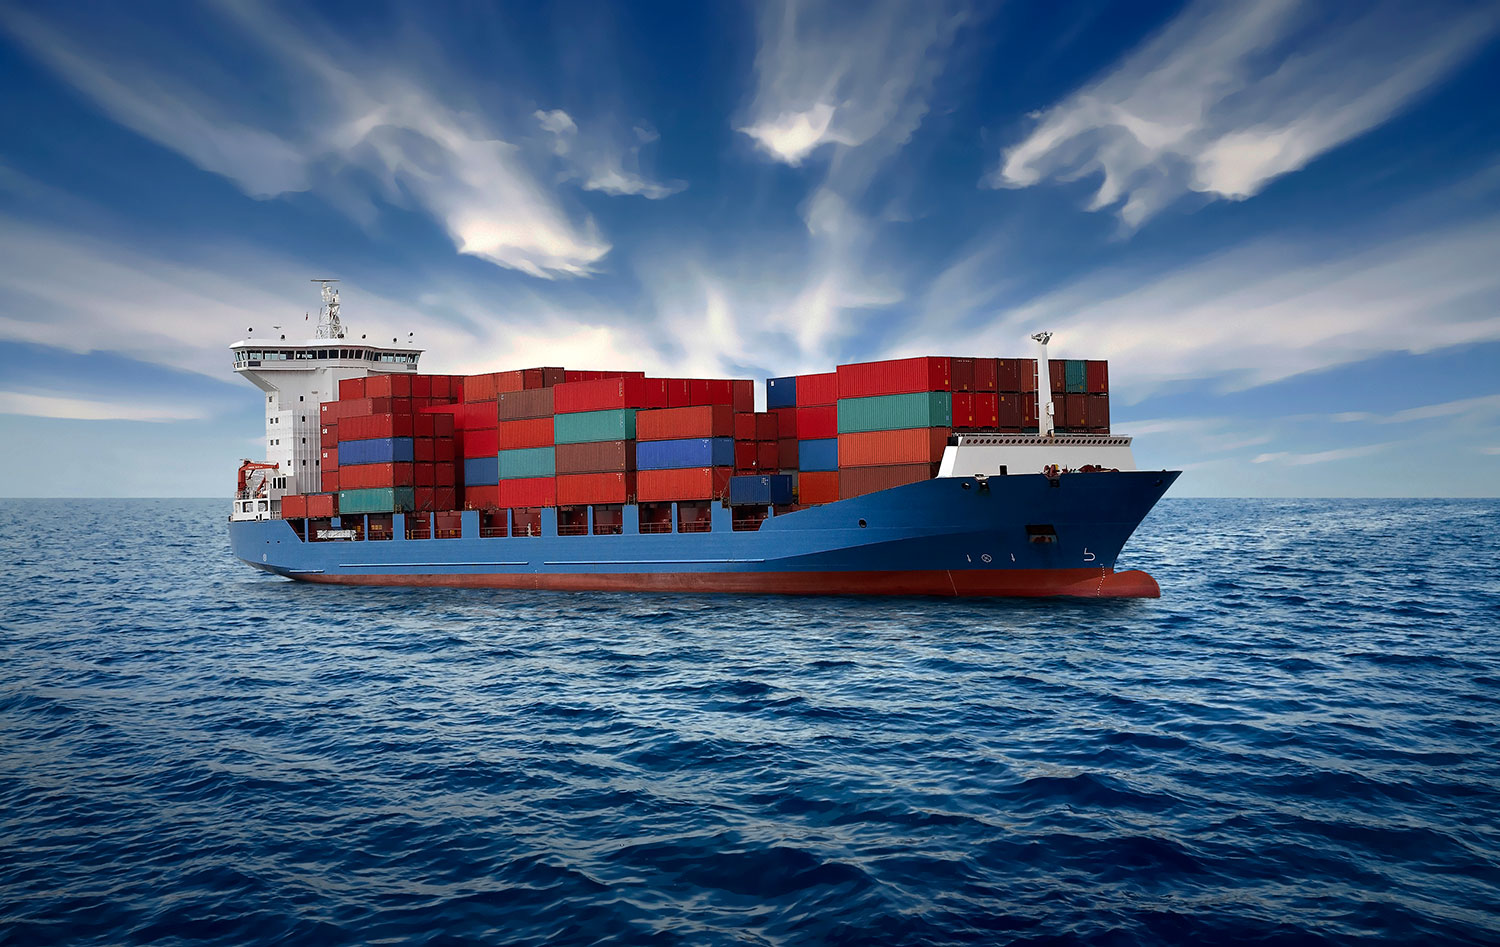 5 technologies that are helping shape the future of shipping